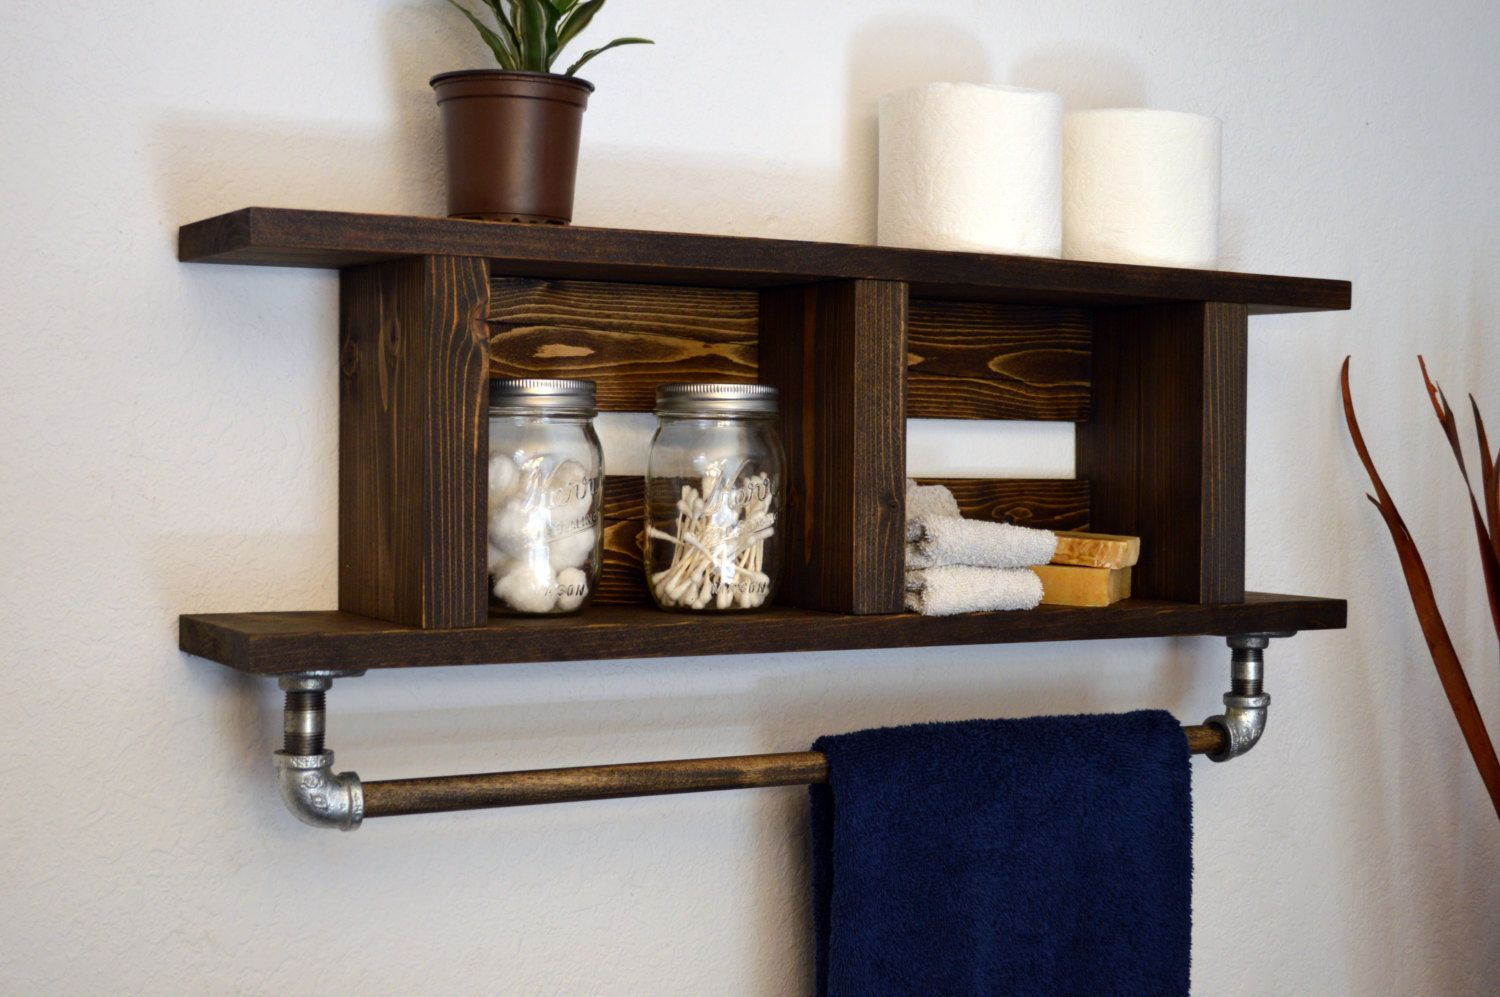 Beau Rustic Modern Bathroom Wood Towel Bar 2 Tier Bath Shelf Ladder Style Dark  Walnut His Hers